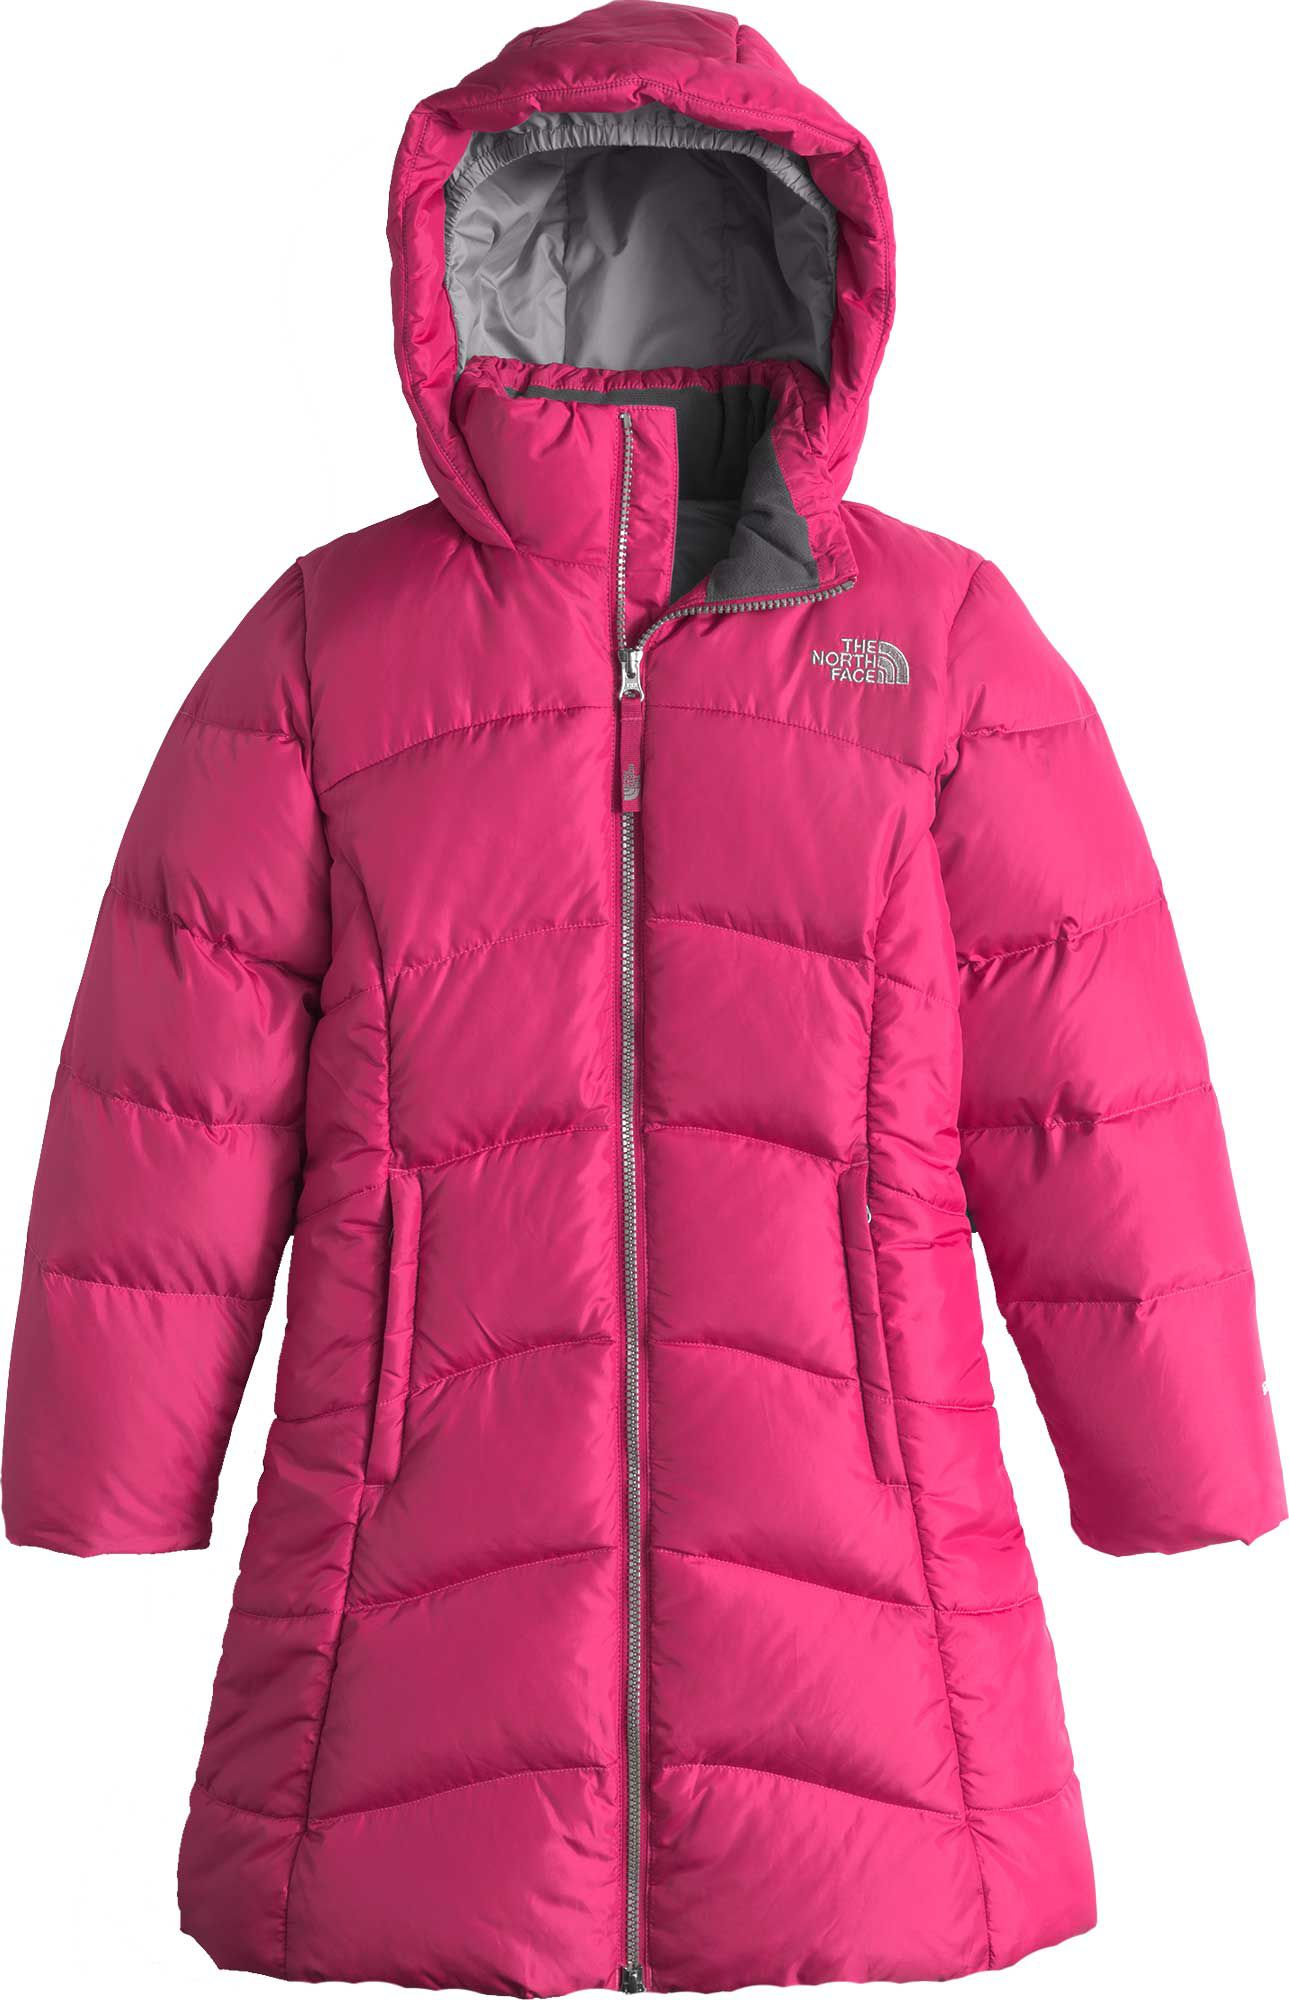 Girls' The North Face Jackets | DICK'S Sporting Goods